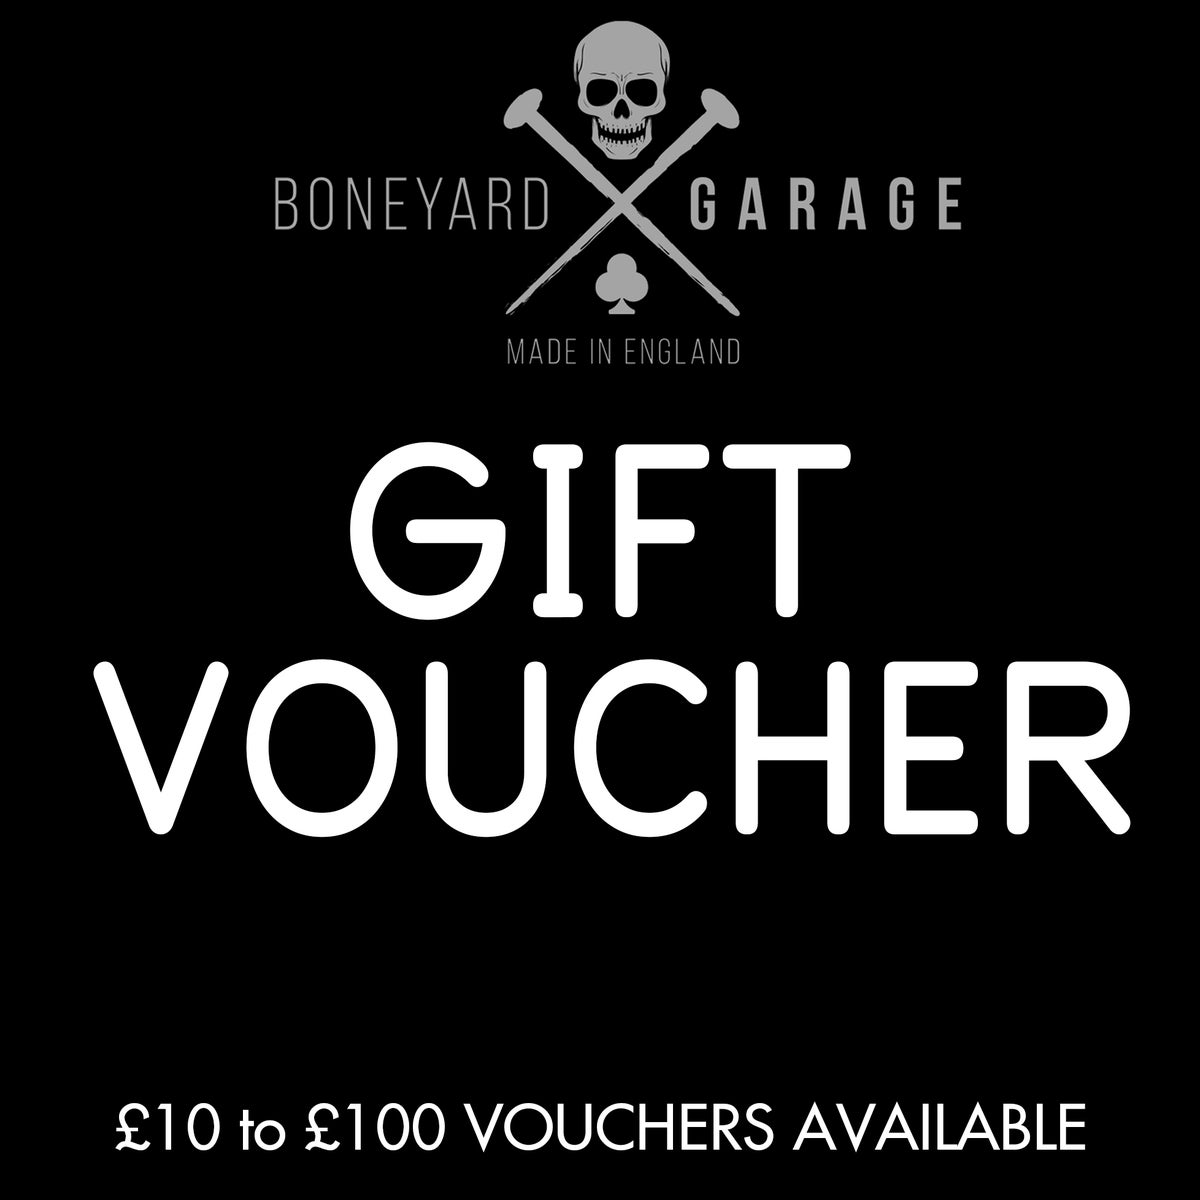 BONEYARD GARAGE GIFT VOUCHER